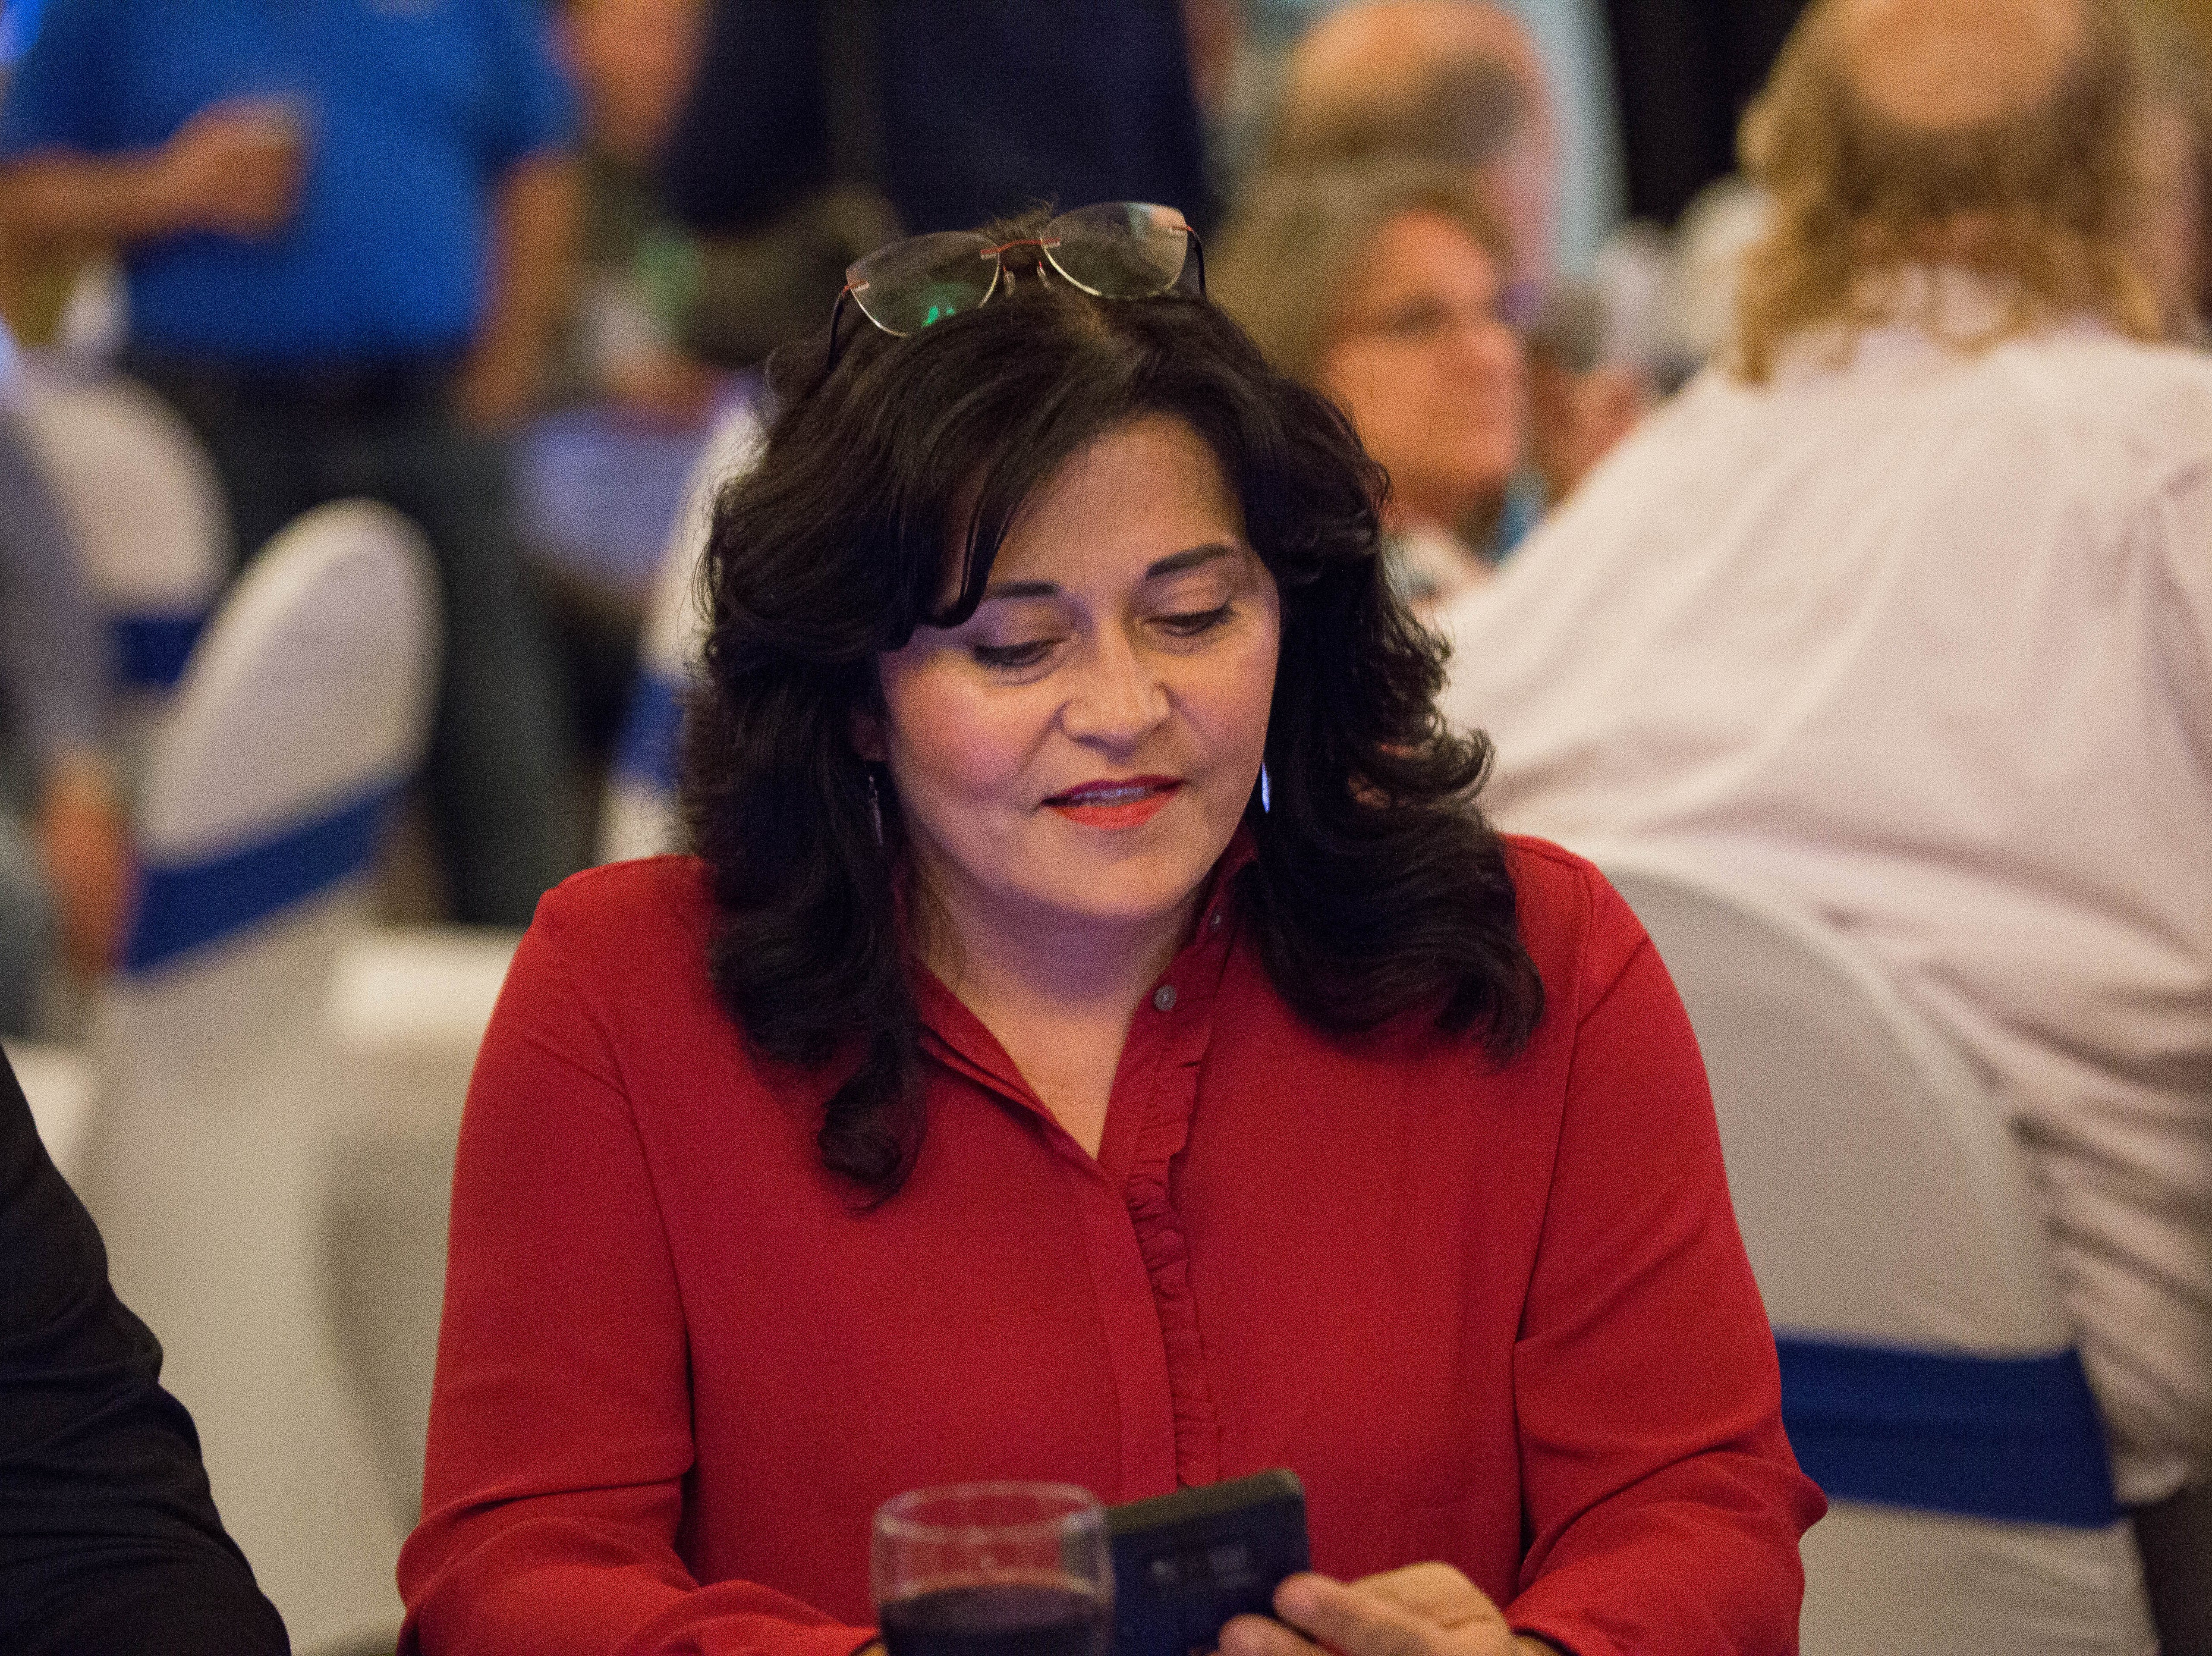 Karen Trujillo, democratic candidate for Doña Ana County Commission district 5, checks her phone for election results, Tuesday November 6, 2018 at a Democratic watch party being held at the Las Cruces Convention Center.